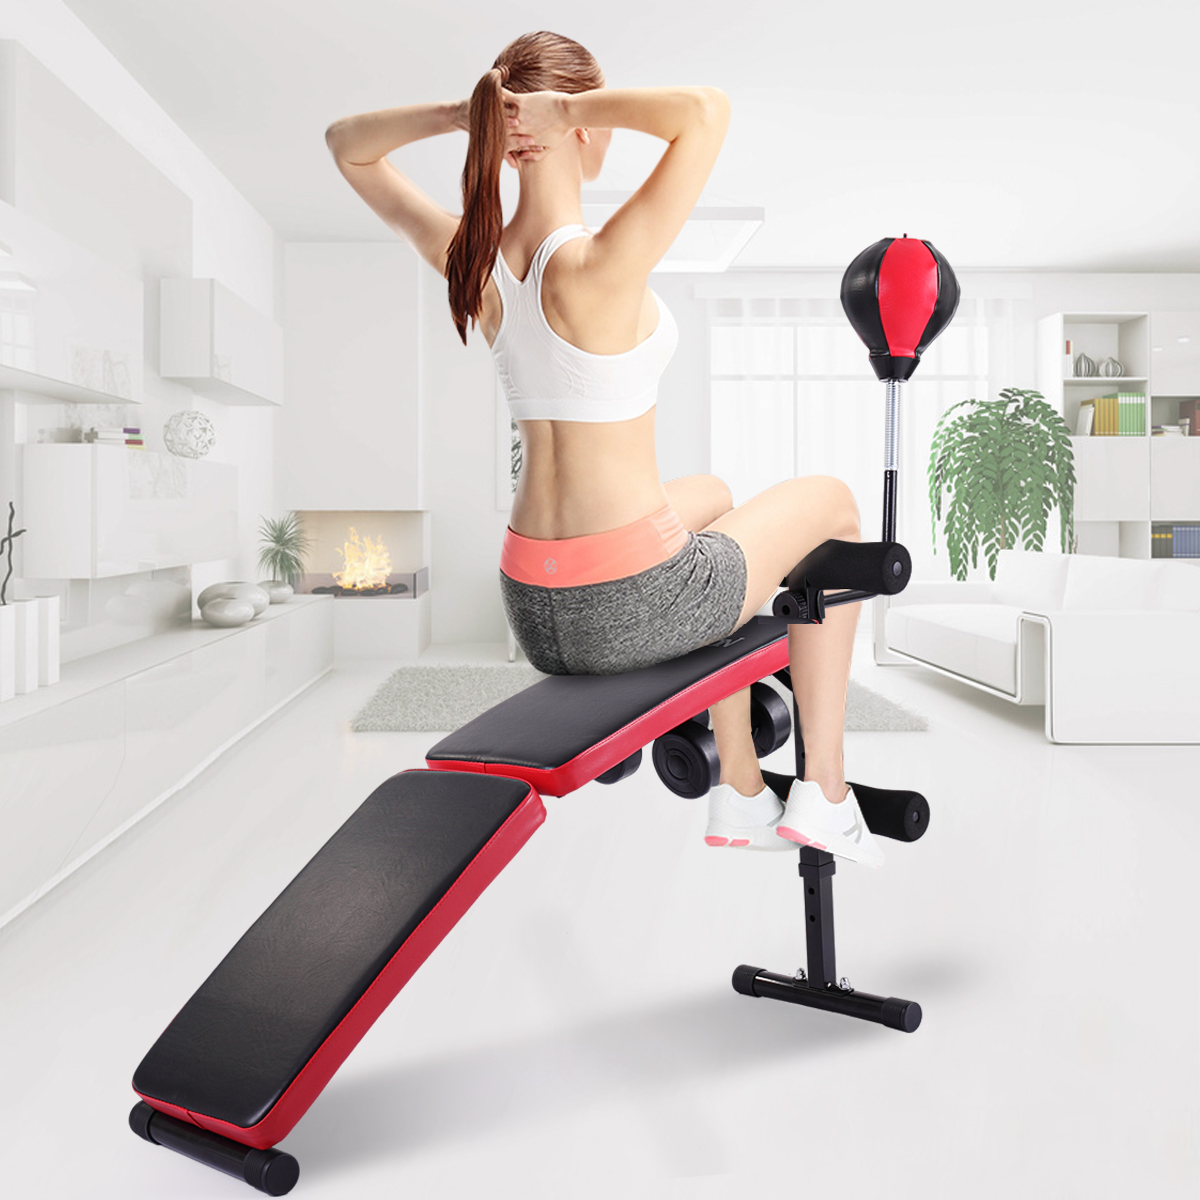 Lazymoon Adjustable Folding Decline Sit up Bench Ab Incline Abdominal Exercise Bench w/ Speed Ball Dumbbel Home Fitness Workout